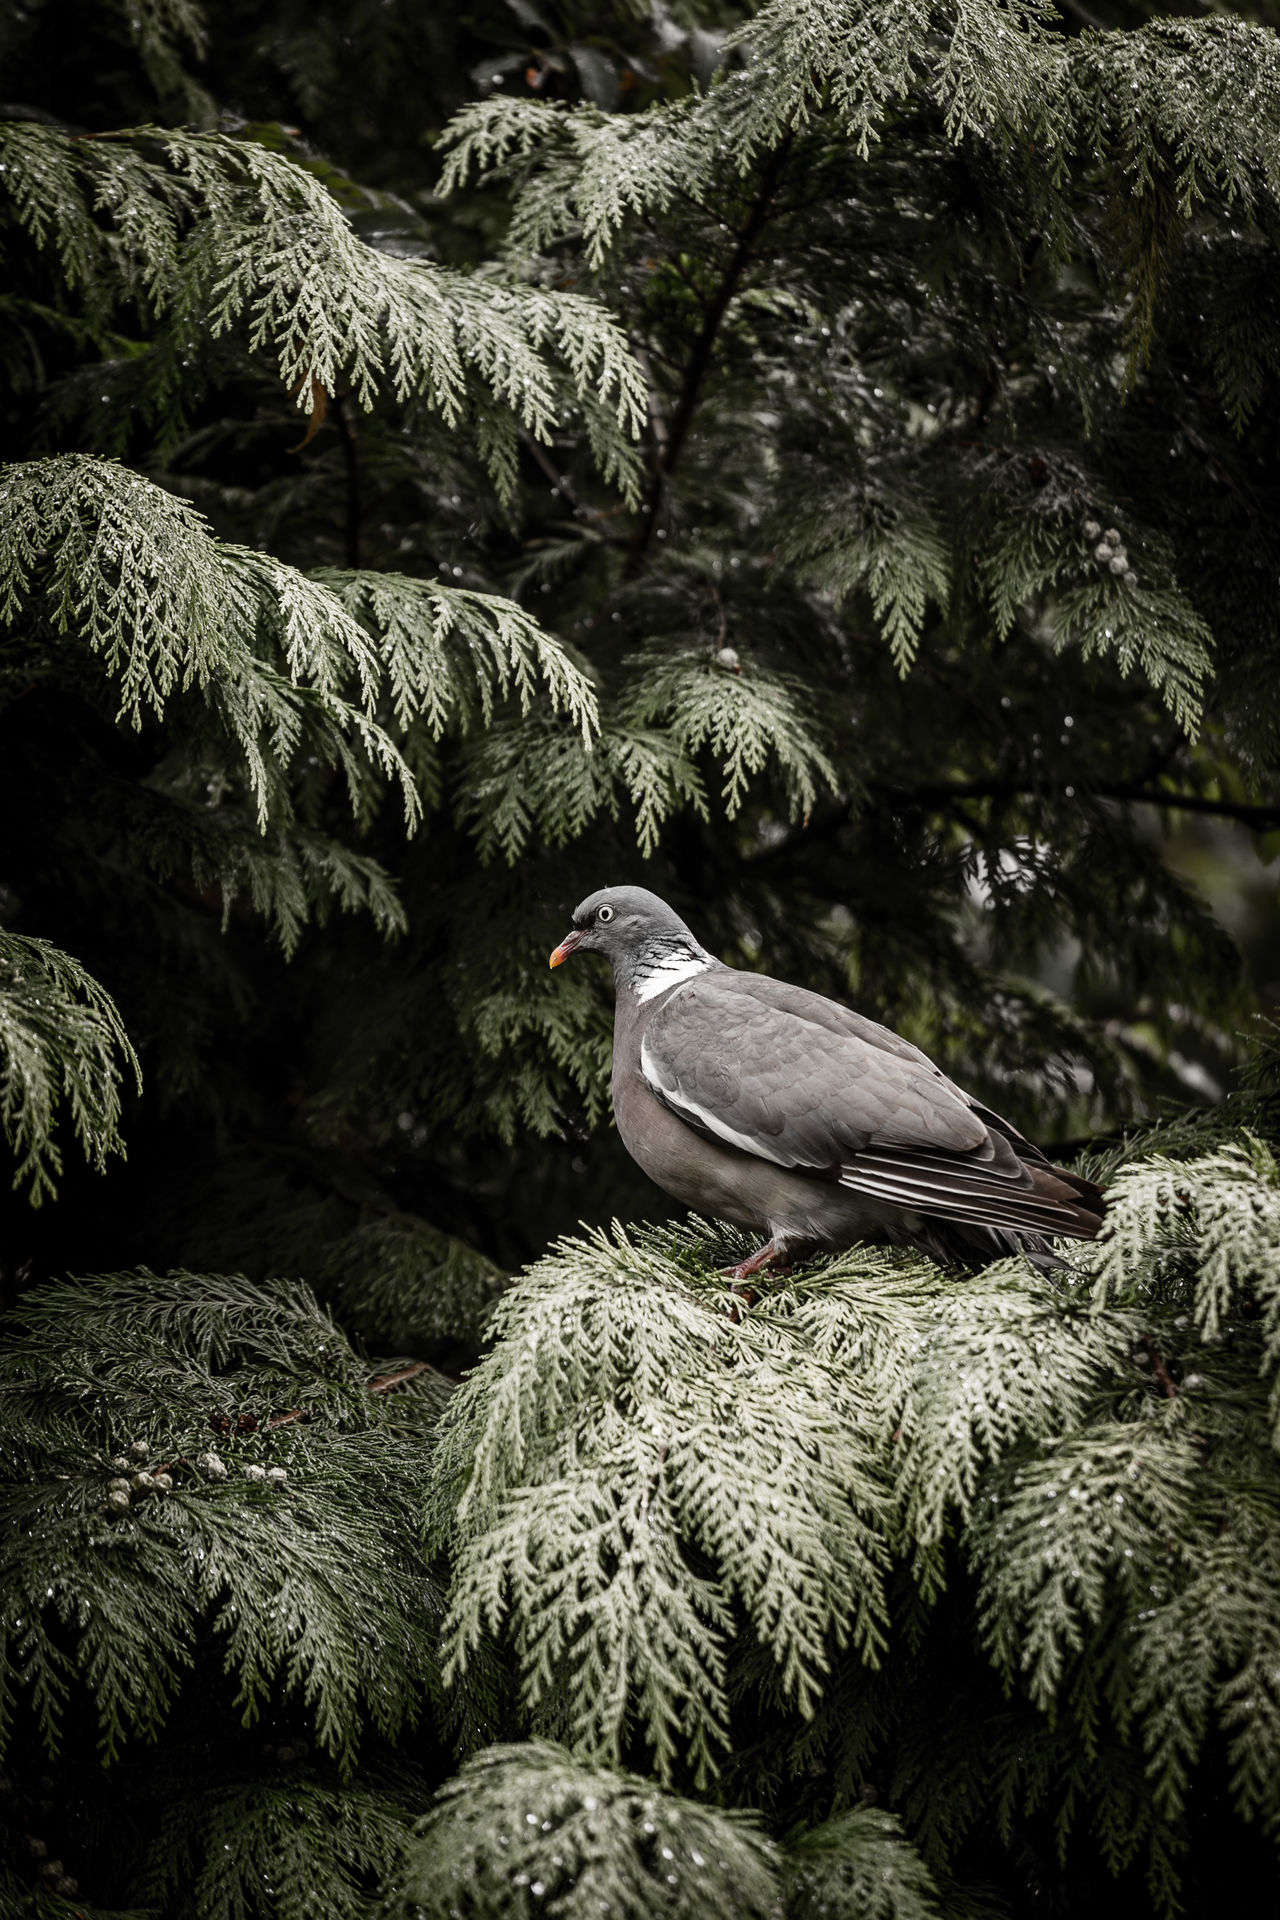 Animal Behavior Animal Head  Animal Themes Animals In The Wild Avian Beak Beauty In Nature Bird Dove Green Mysterious Nature Nature On Your Doorstep Nature Photography Nature_collection One Animal Perching Portrait Scenics Serious Tree Watch Out! Wildlife Alertness Always Be Cozy